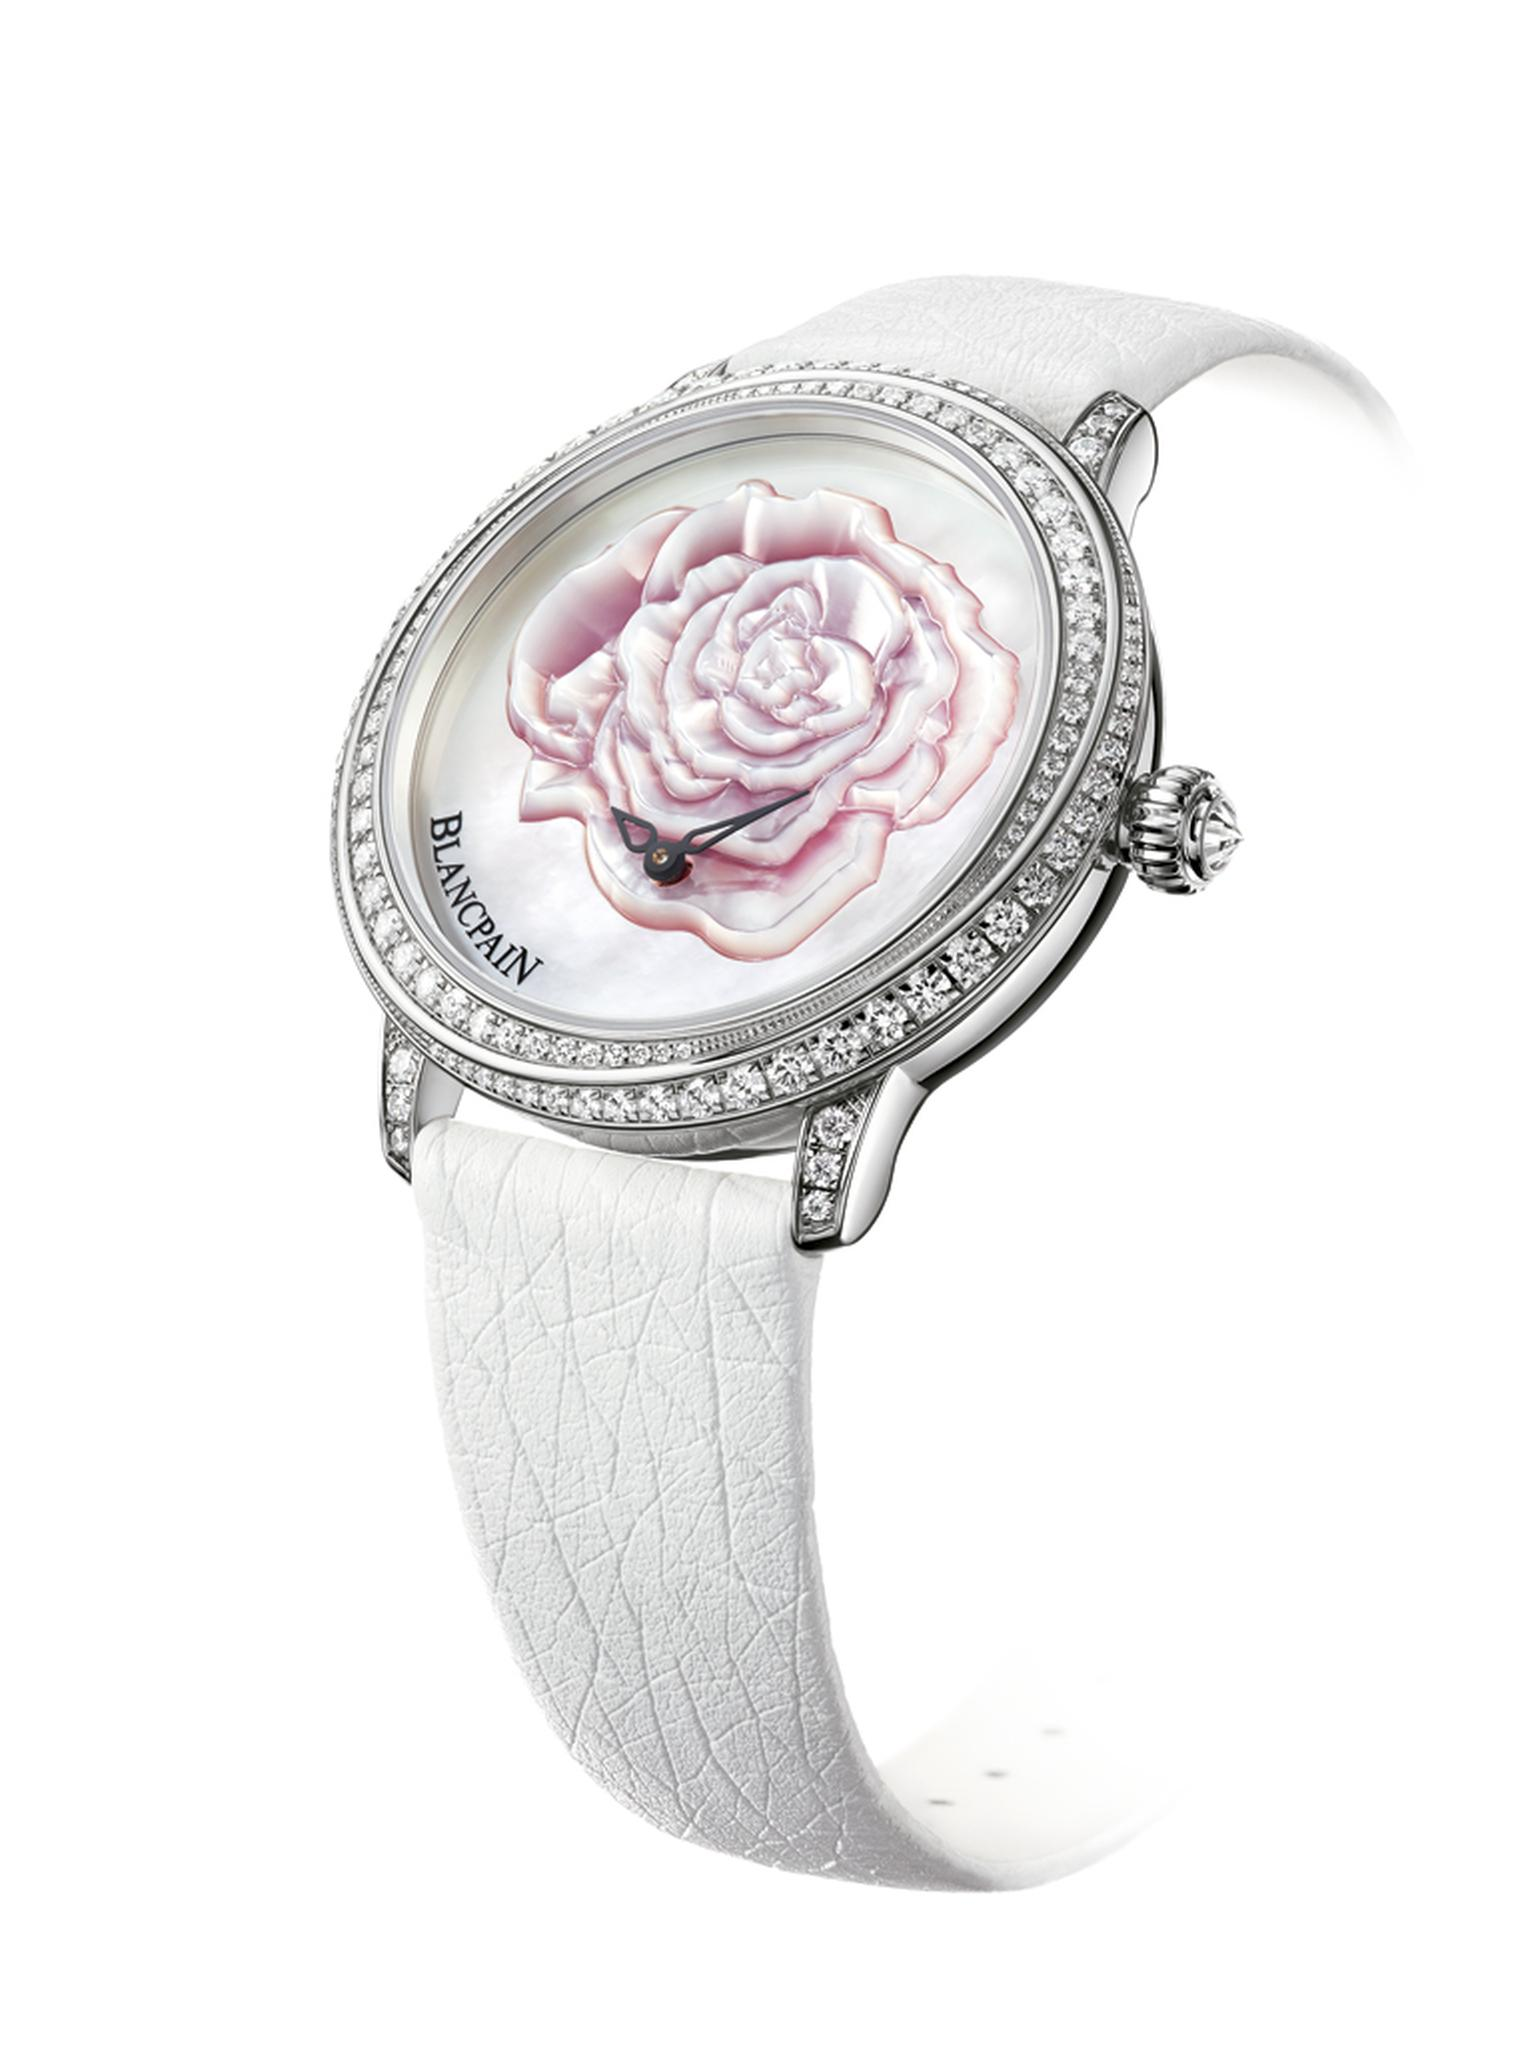 Blancpain watches has created a very special ladies' watch for Valentine's Day featuring a sculpted, pink mother-of-pearl rose in the centre of the dial surrounded by 121 diamonds on the bezel and lugs. Presented in a 36.8mm white gold case, the watch is